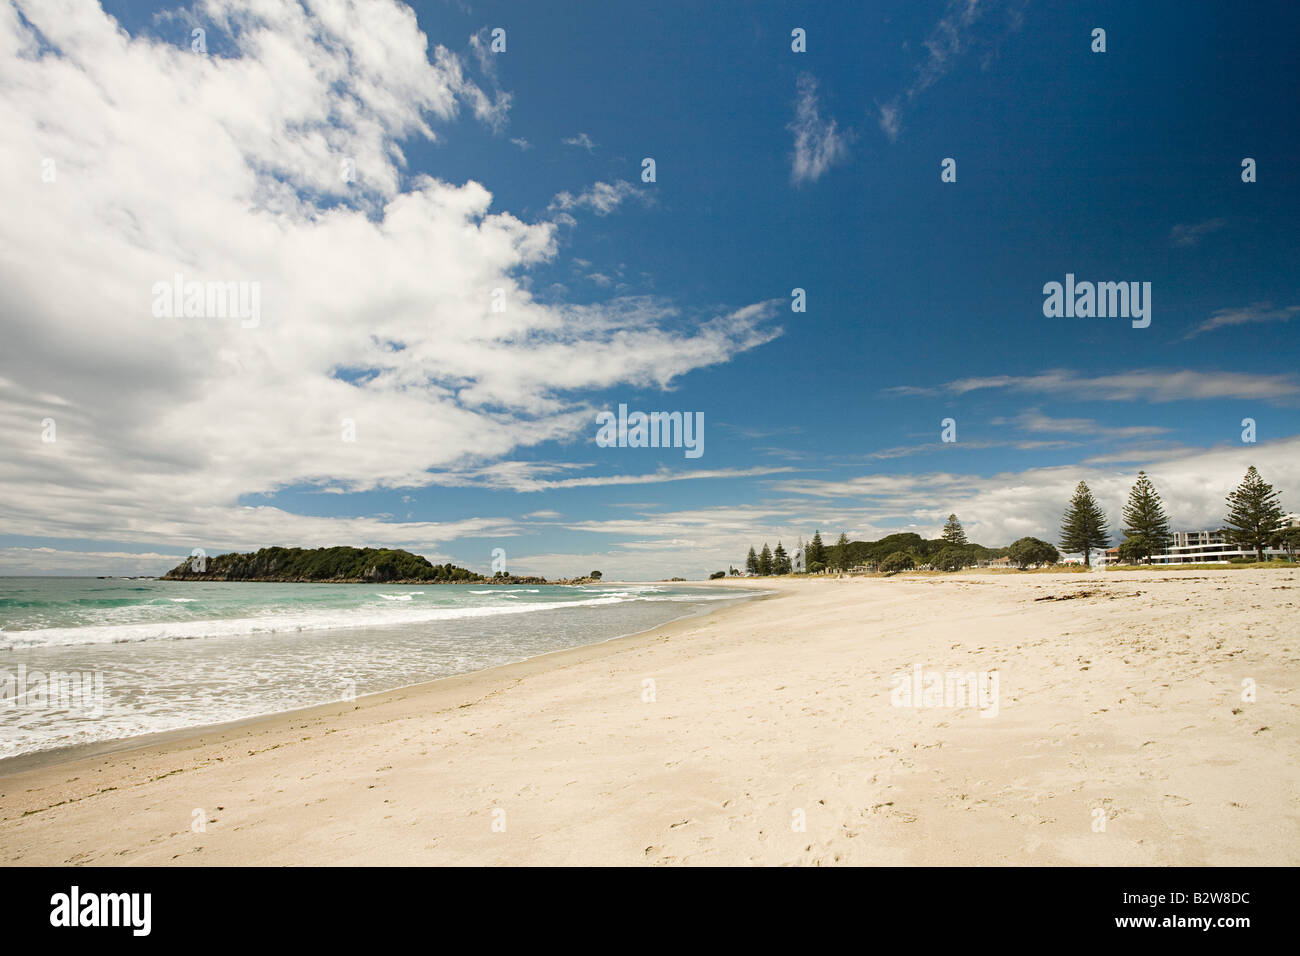 A beach on north island - Stock Image